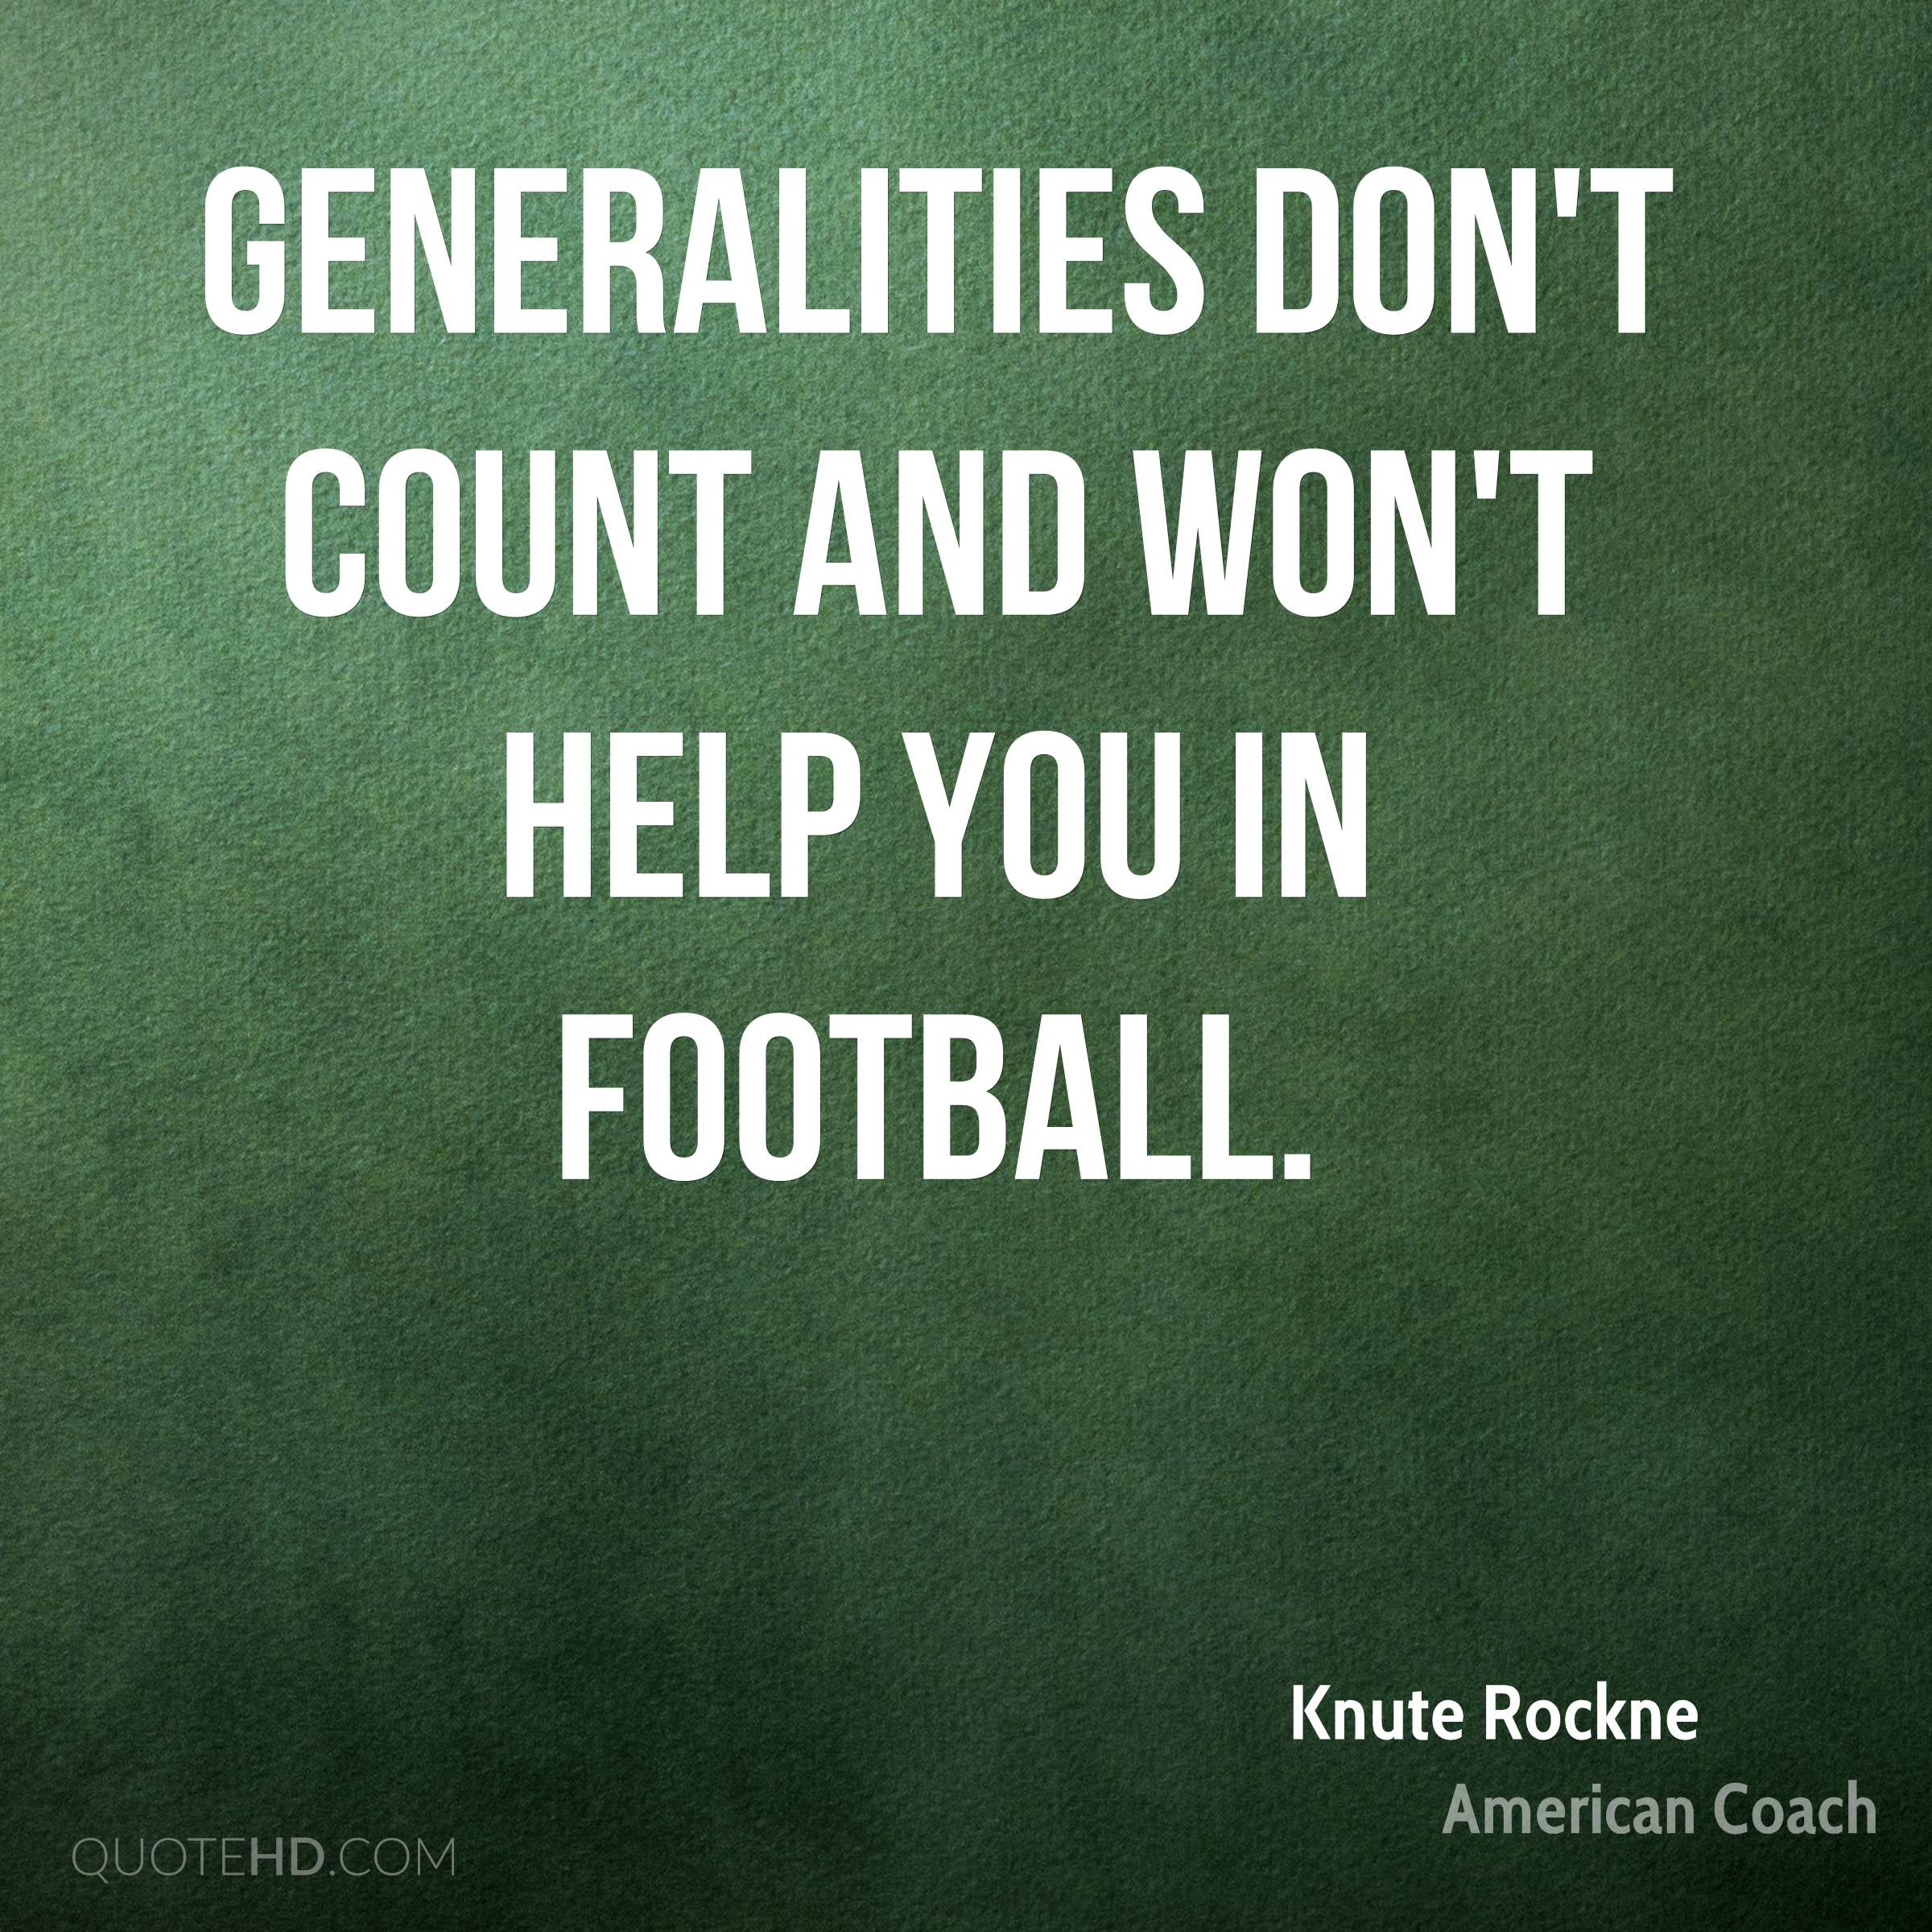 Generalities don't count and won't help you in football.